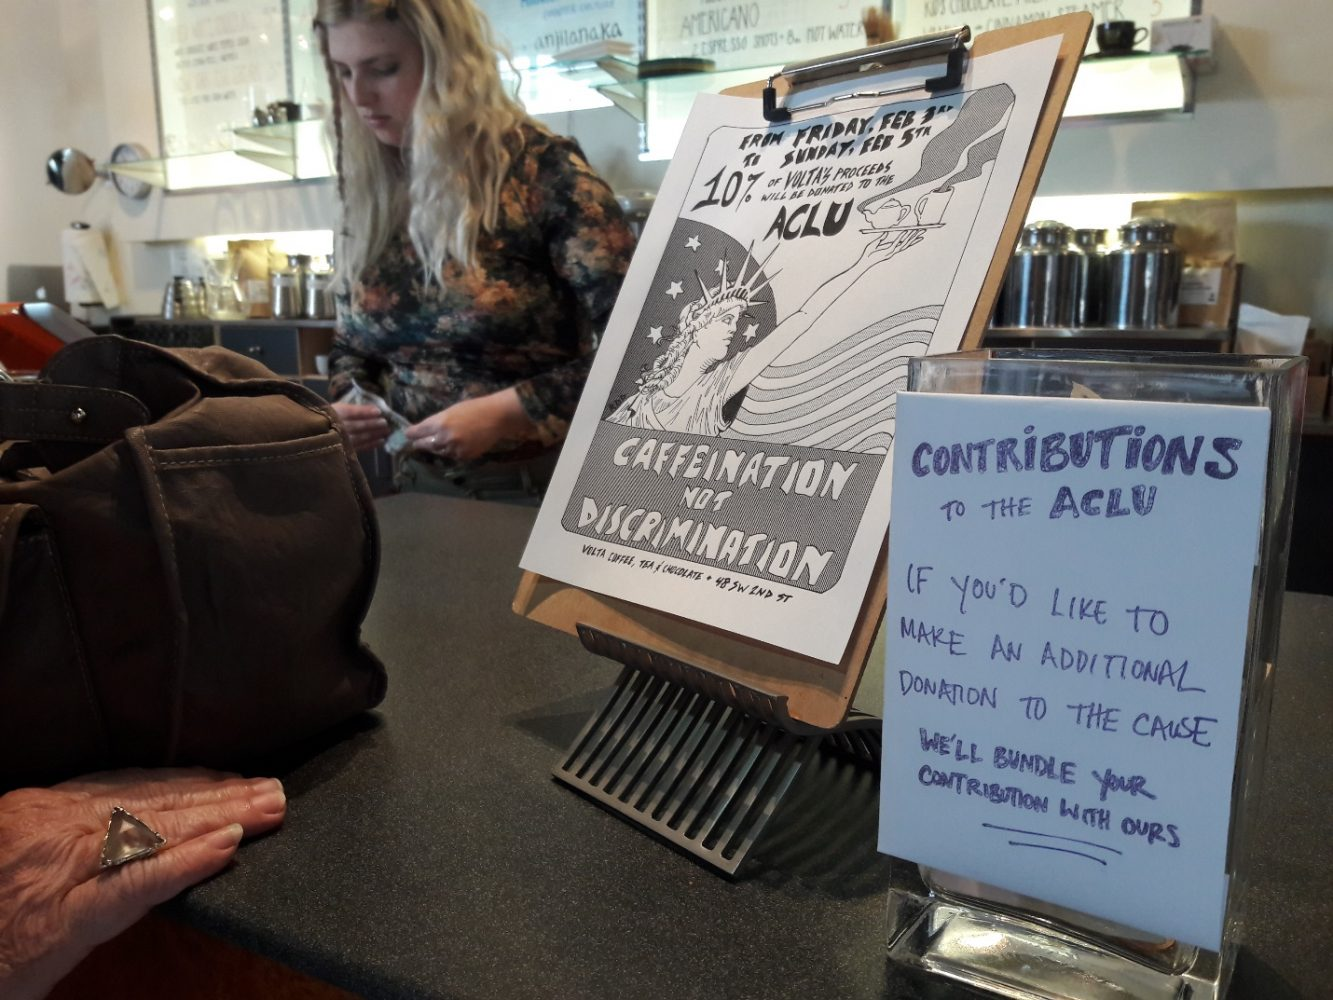 White apron gainesville fl - Caffeination Not Discrimination Gainesville Coffee Shop Fundraises For Aclu Wuft News